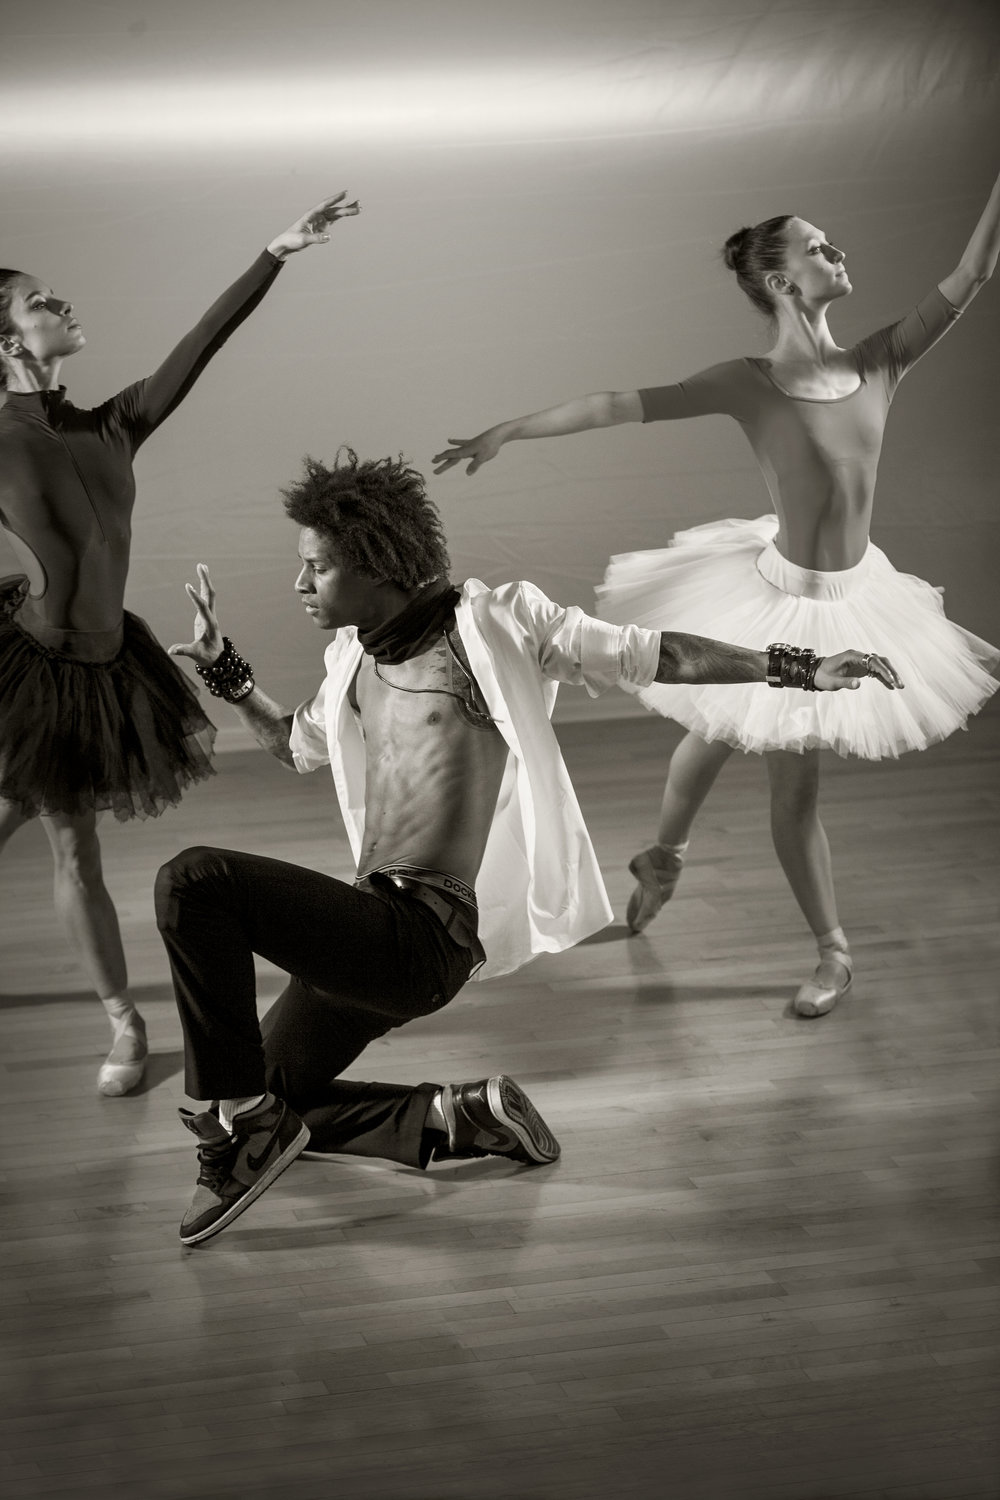 Les Twins Annex Vid Shoot Stills_K5V0085-B&W.jpg